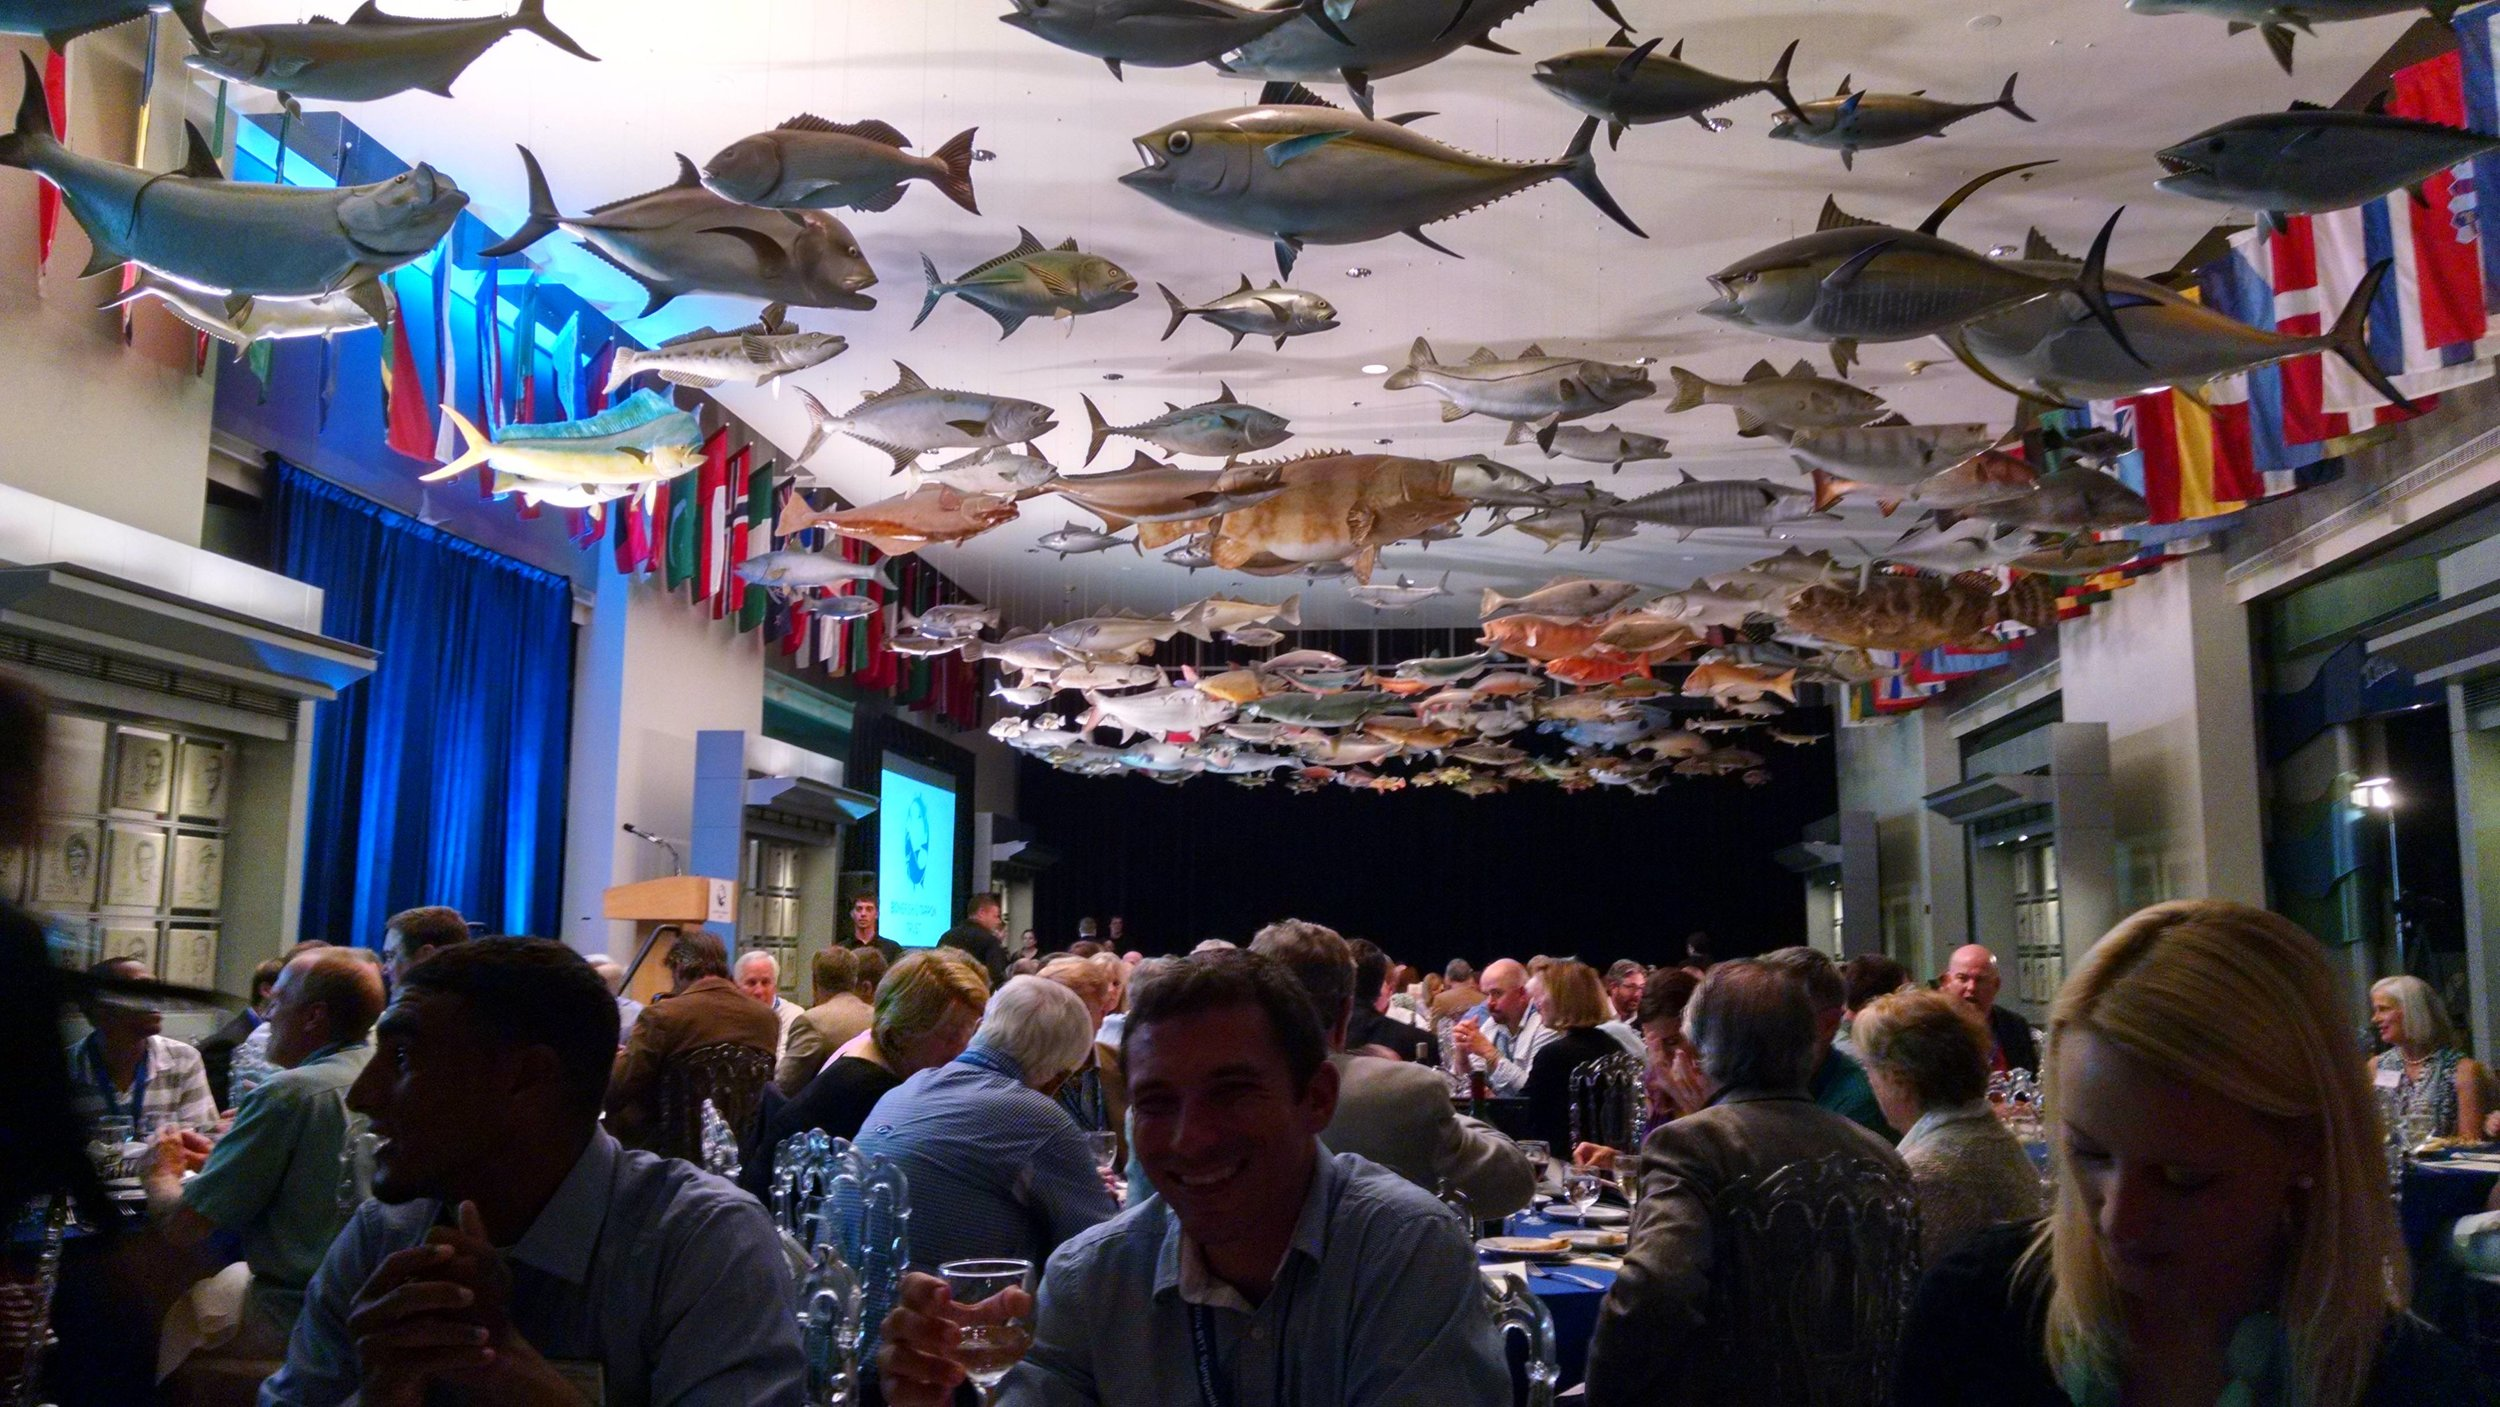 Conference dinner at the IGFA Hall of Fame and Museum. The future of flats conservation was discussed beneath replicas of world record fish.